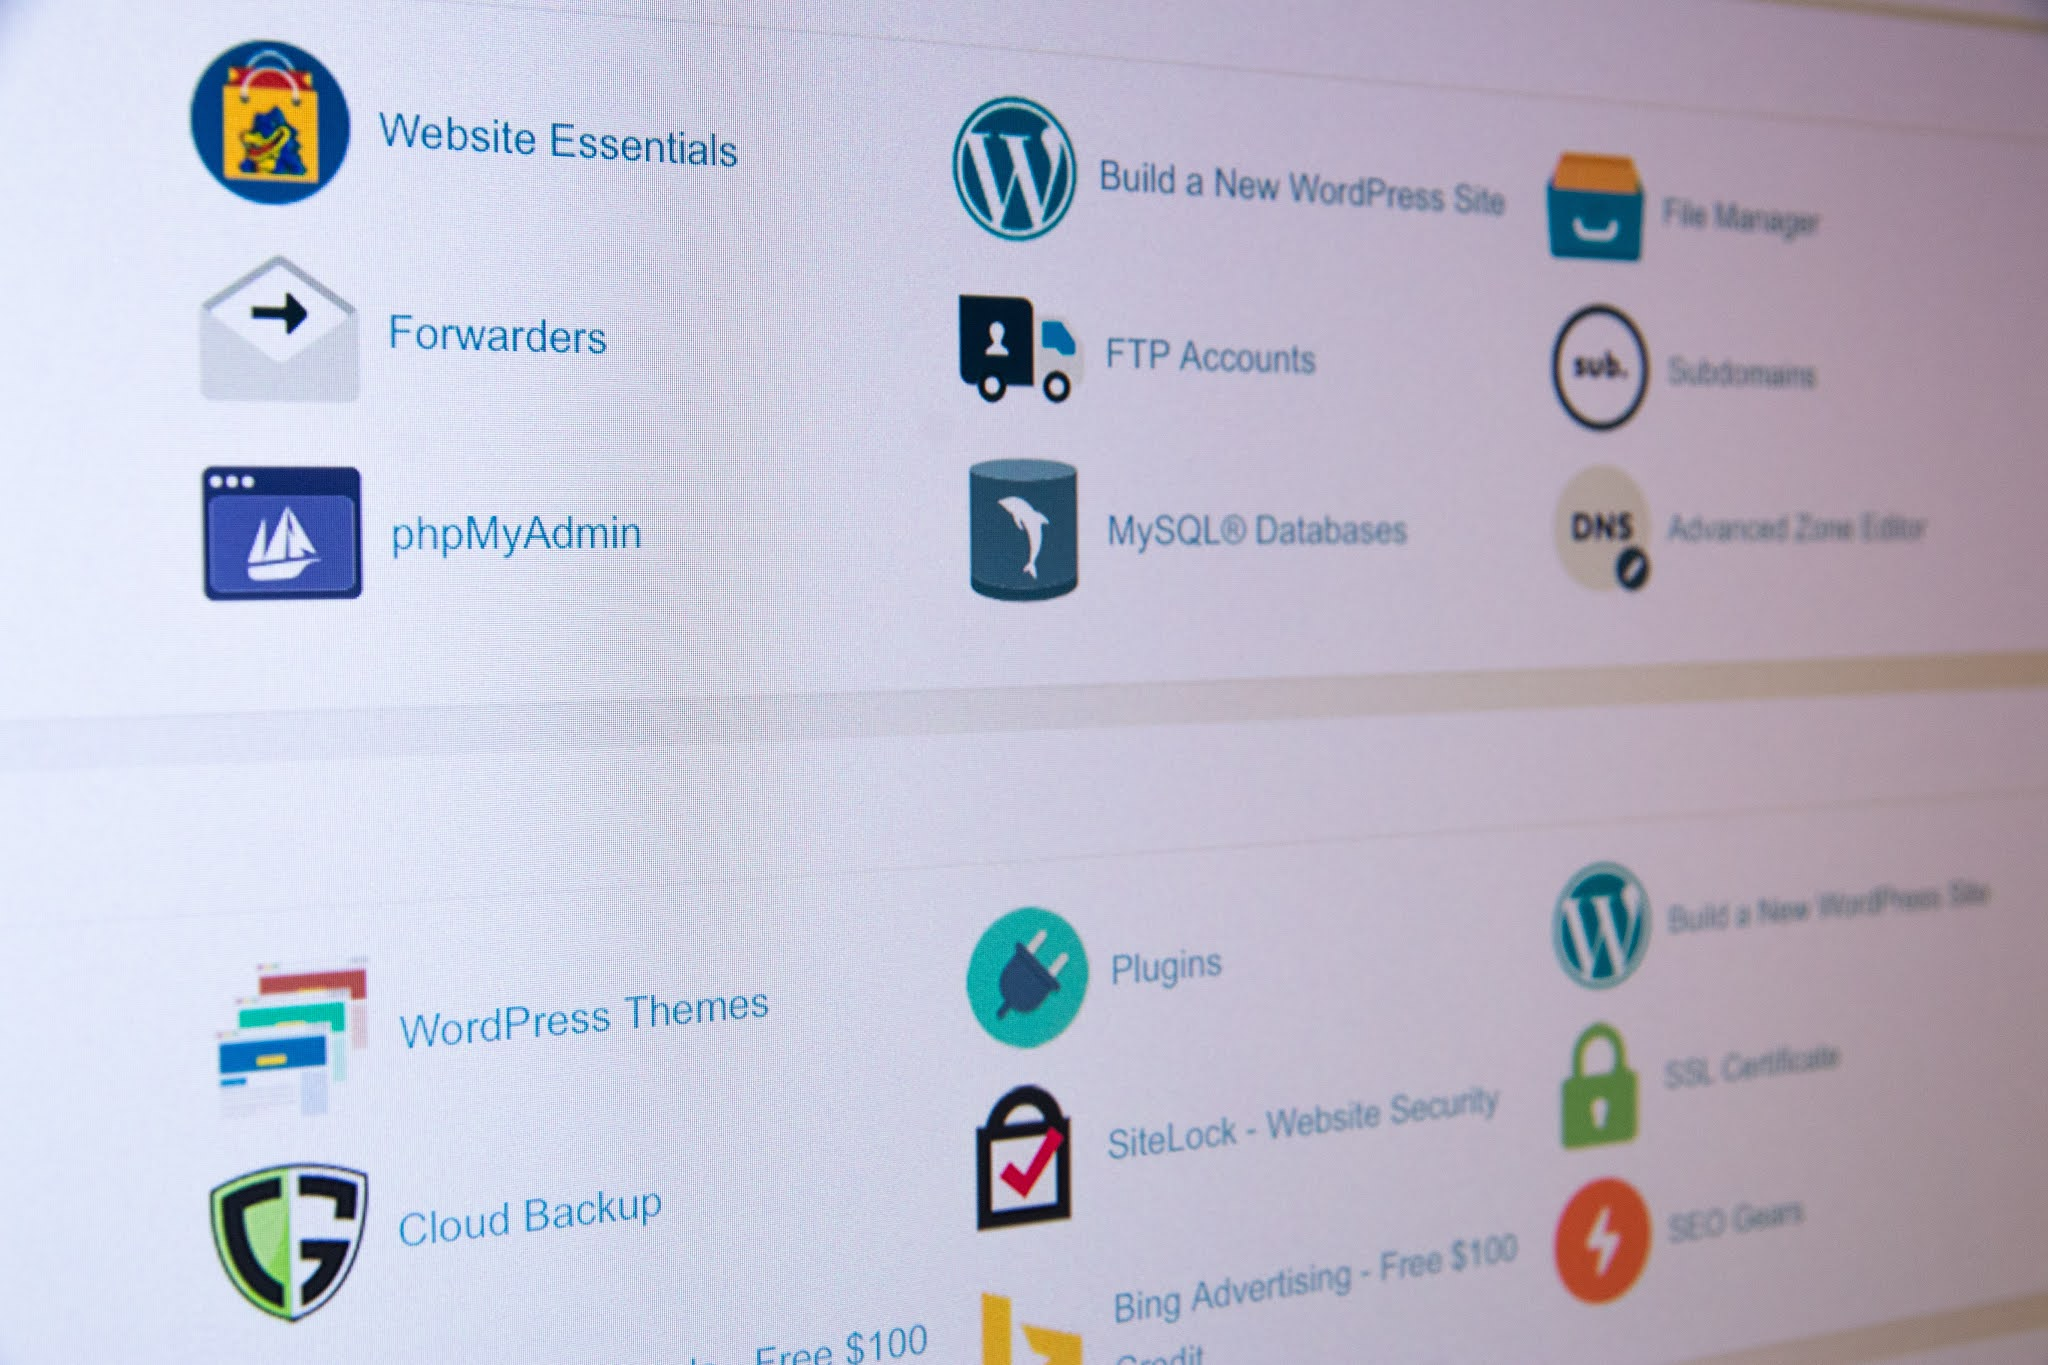 How to Launch a New WordPress Application on an Existing BestKnownHost Cloud Server